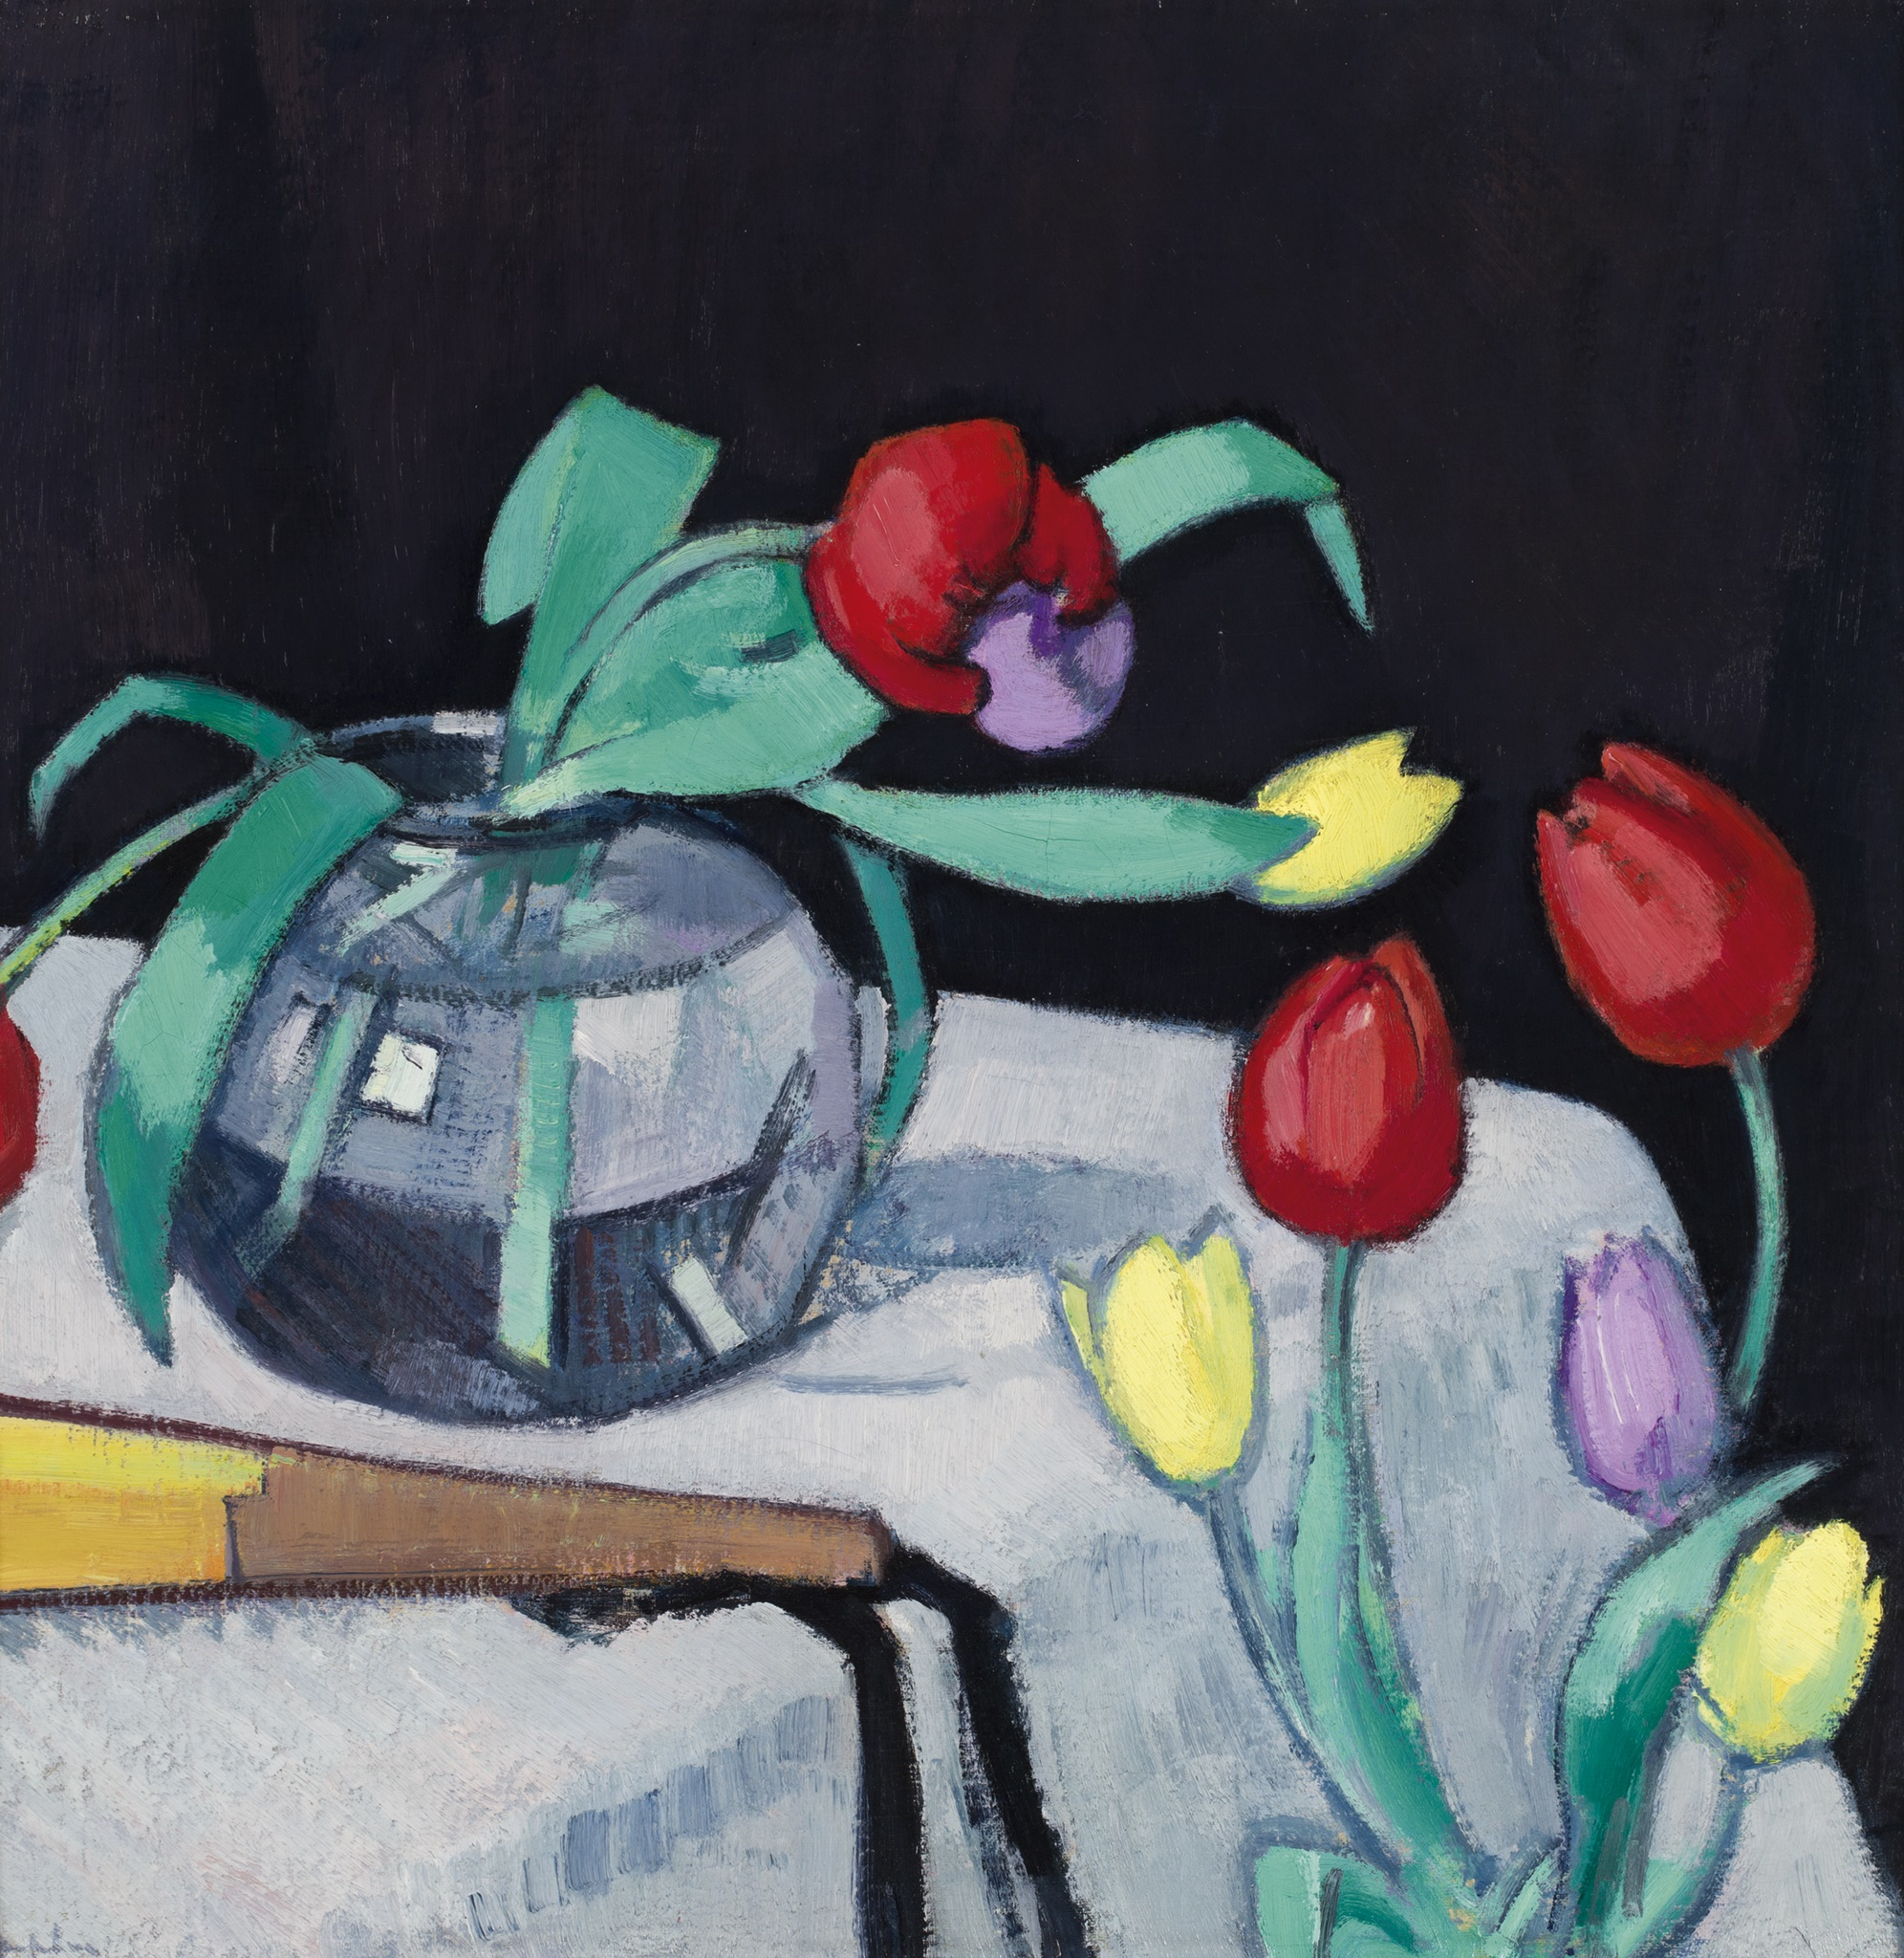 Lot 51 | SAMUEL JOHN PEPLOE R.S.A. (SCOTTISH 1871-1935) | STILL LIFE WITH TULIPS ON A BLACK BACKGROUND Sold for £193,250